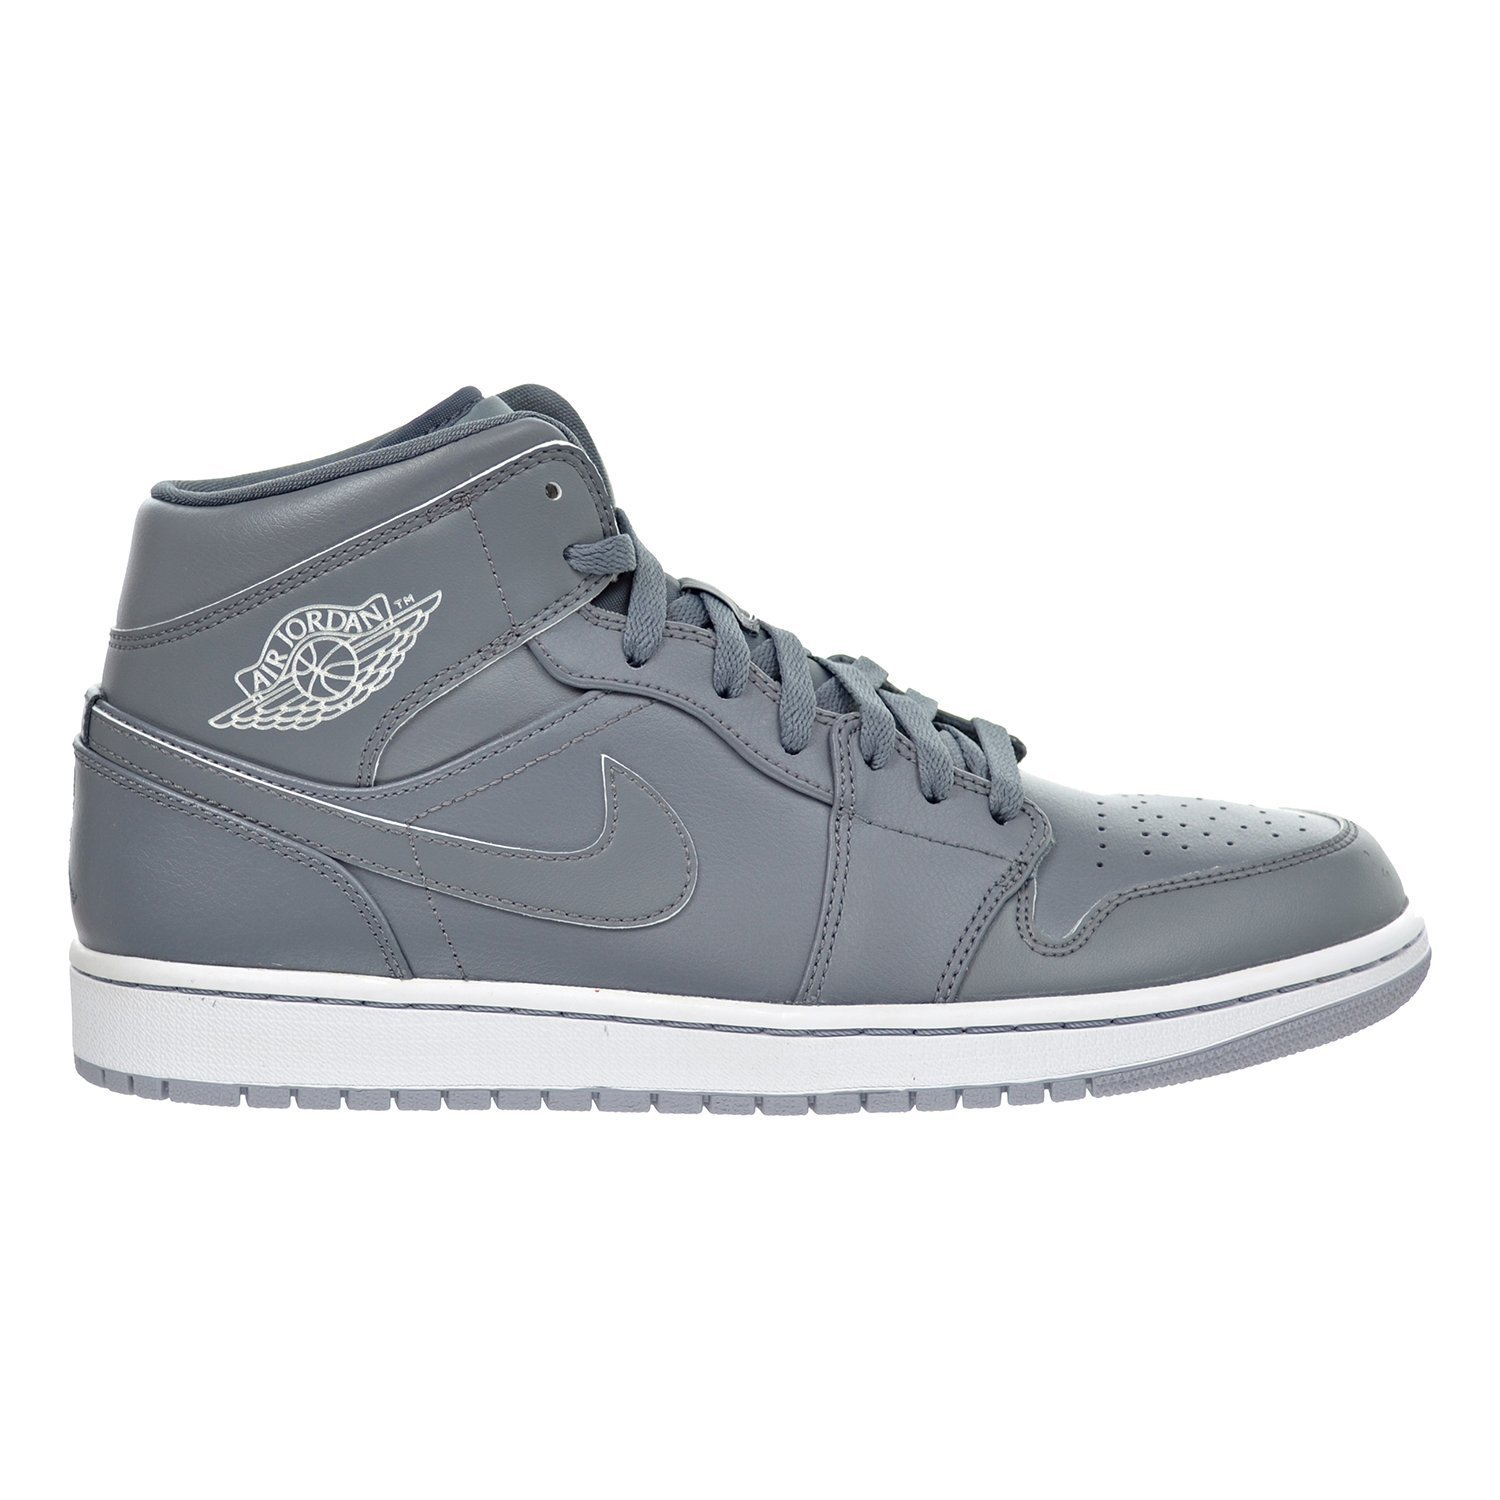 the latest 22a14 25c91 Get Quotations · Air Jordan 1 MID Men s Shoes Cool Grey White Wolf Grey  554724-031